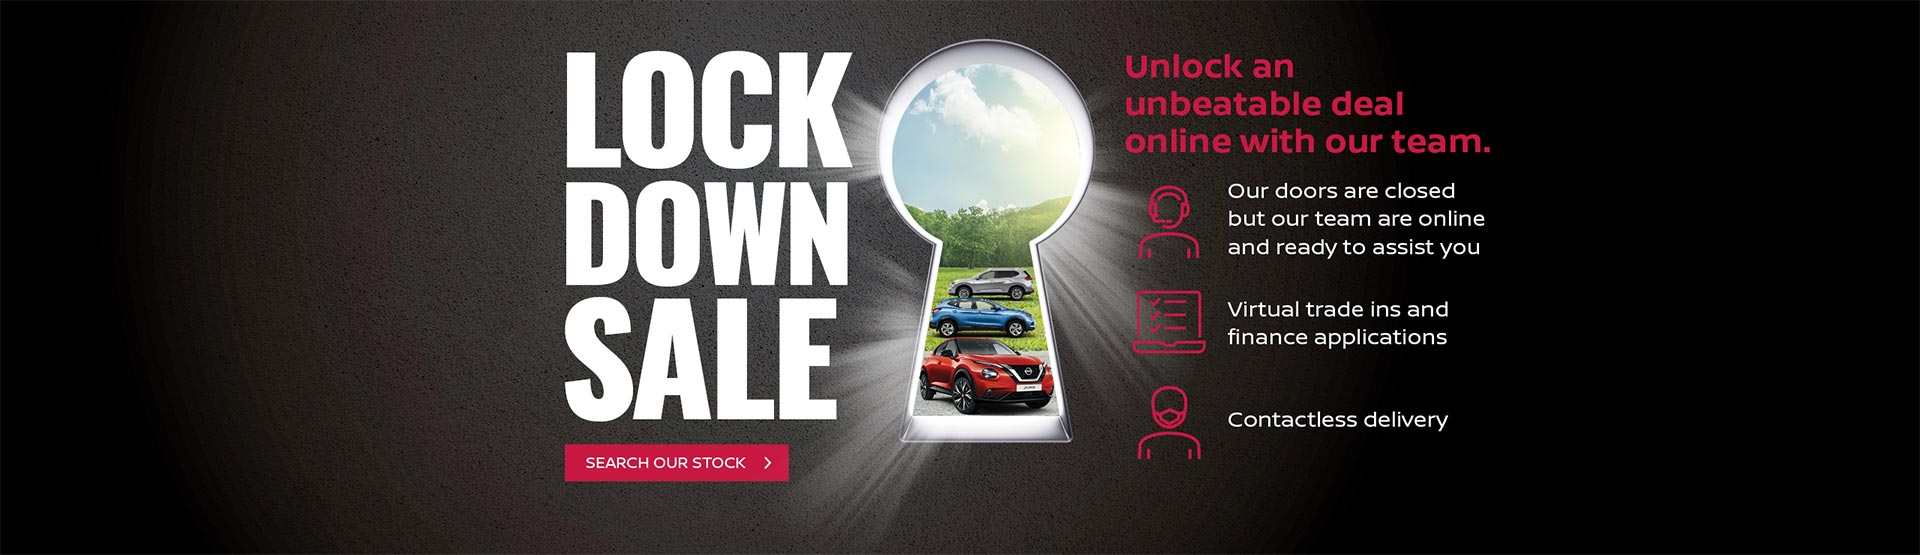 Ringwood Nissan Lockdown Sale